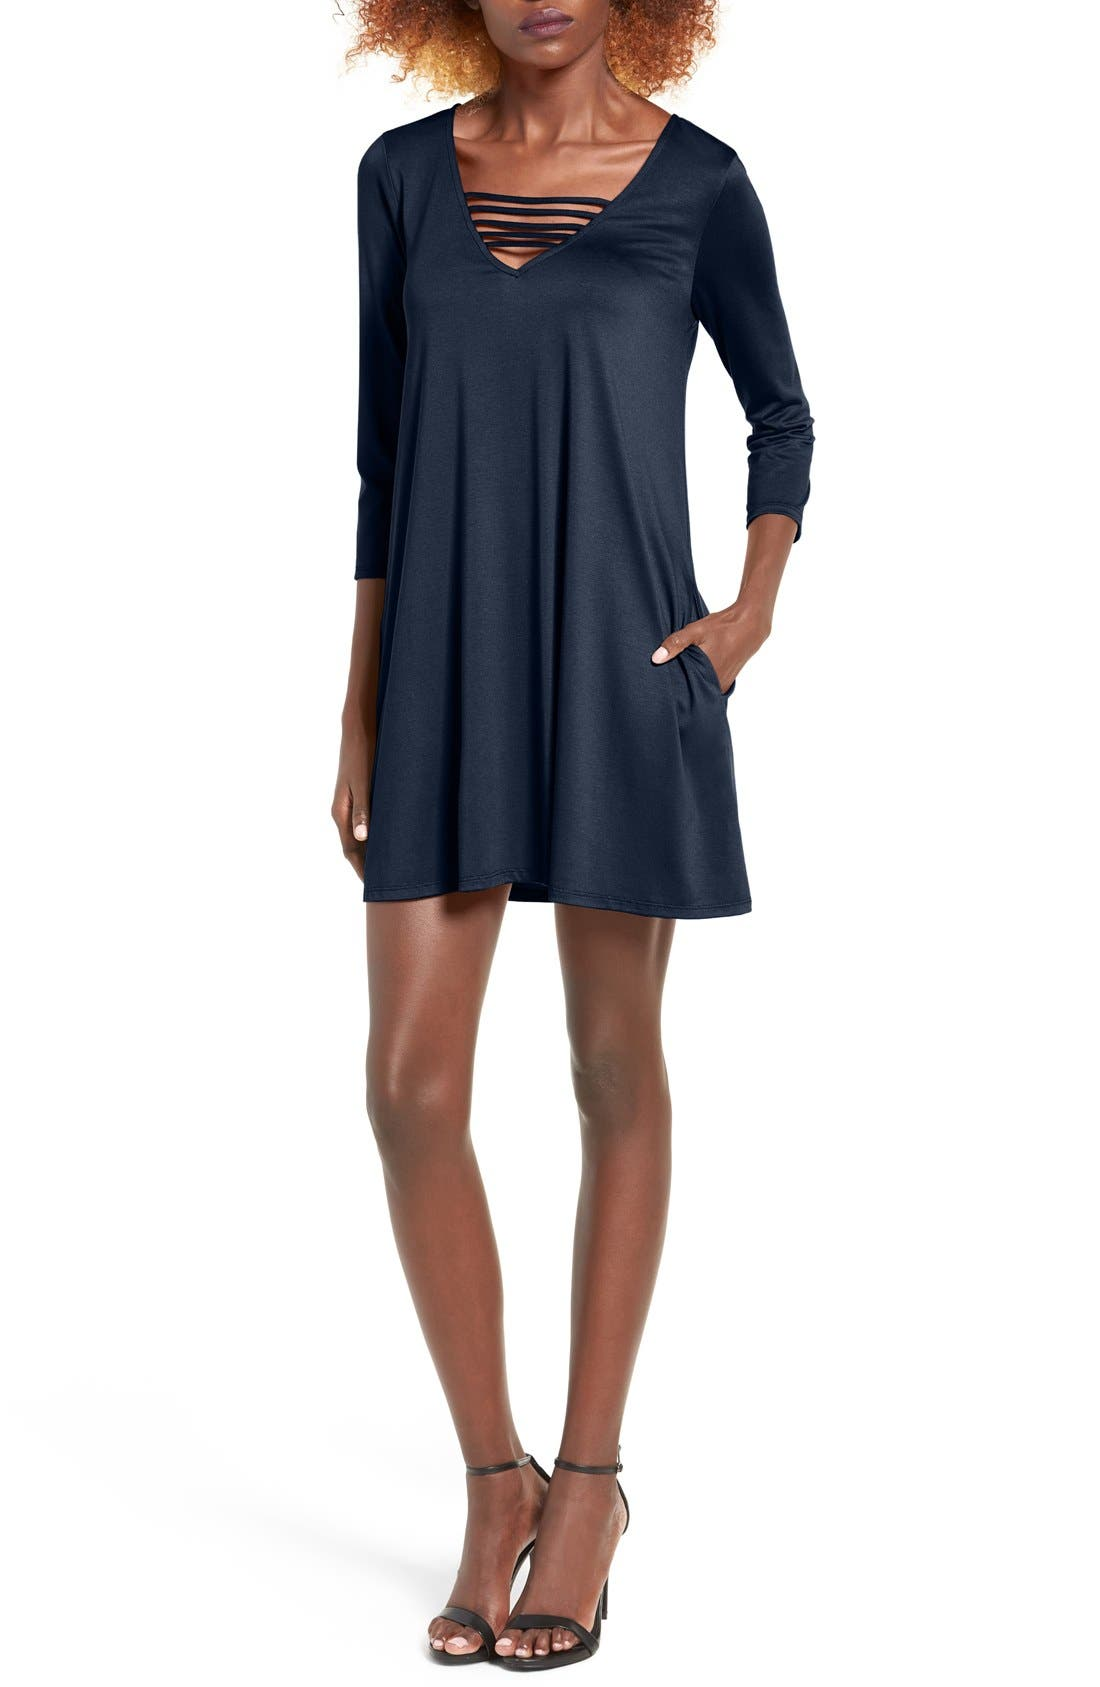 Alternate Image 1 Selected - Socialite Serena Three Quarter Sleeve Dress